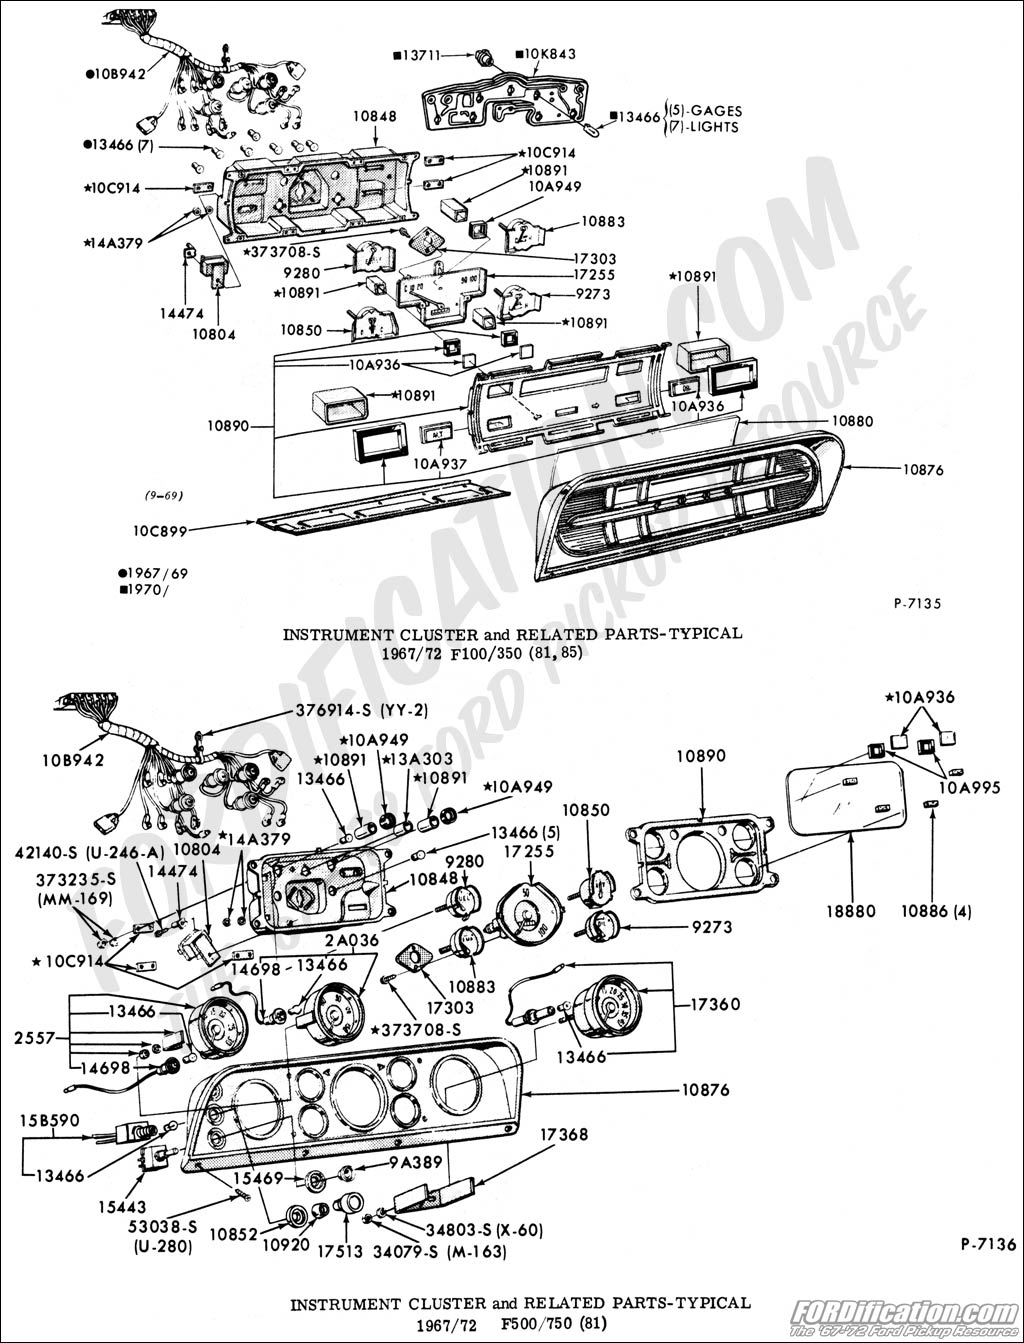 1970 Ford Truck Parts Catalog